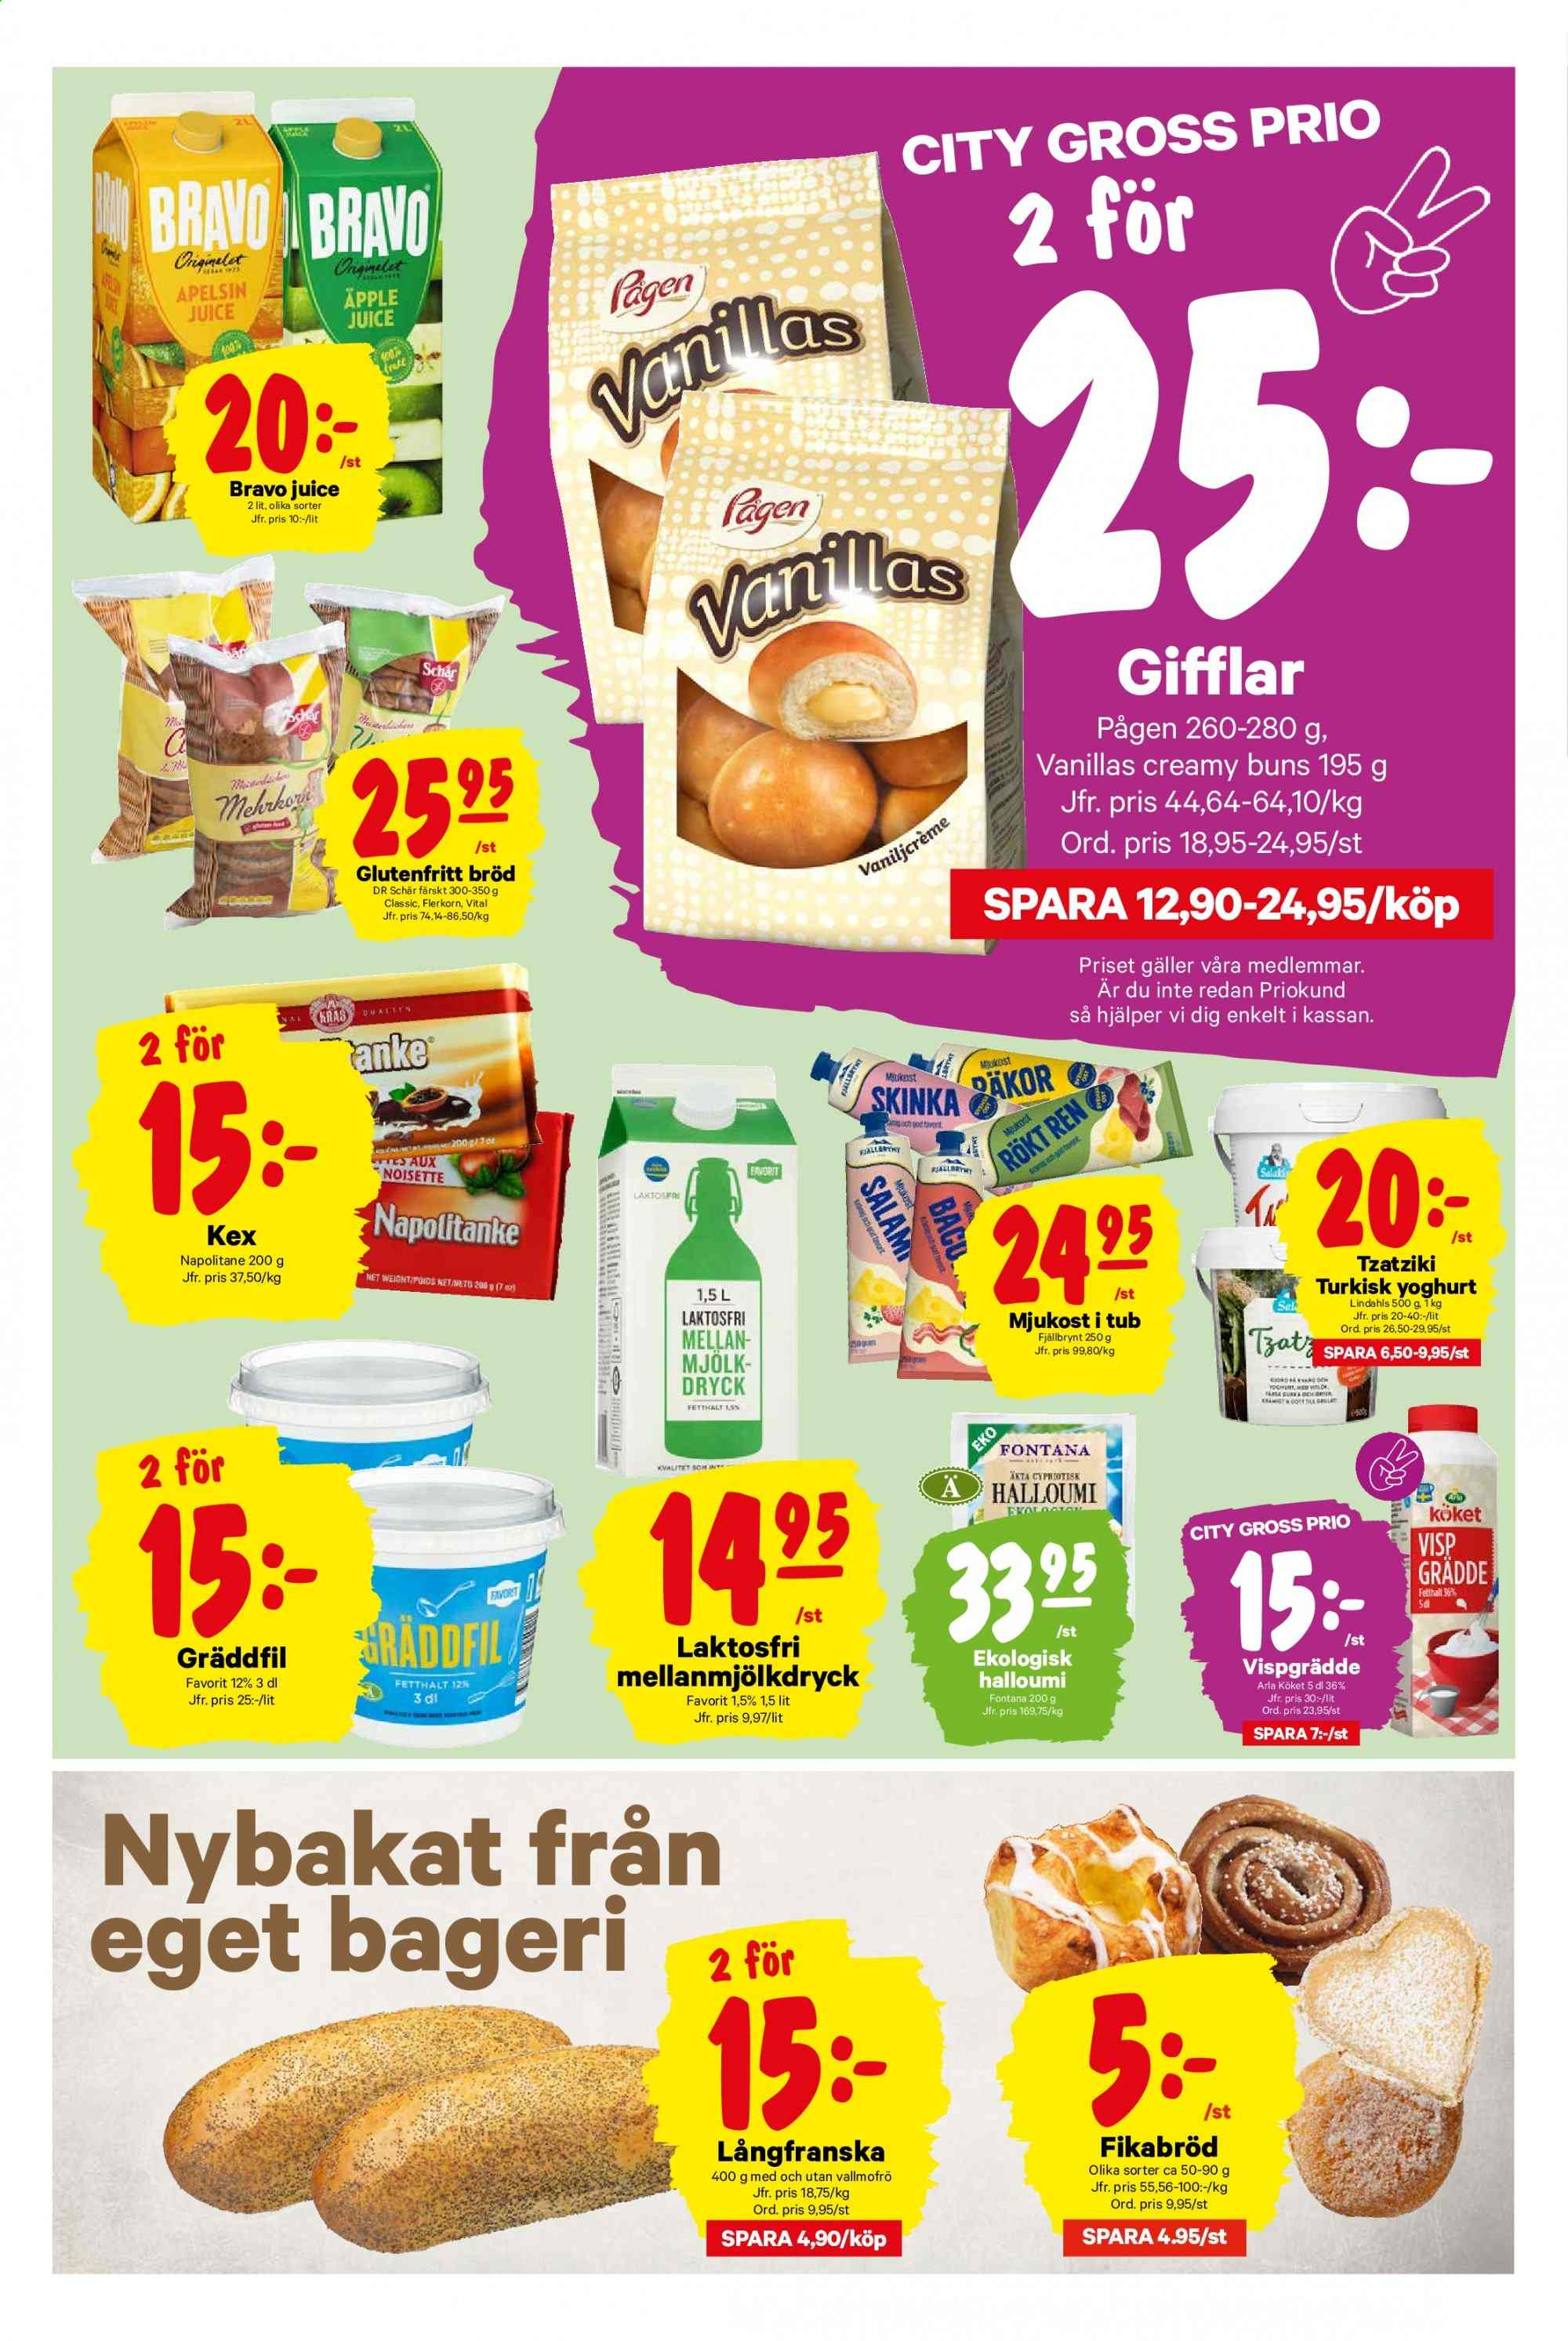 City Gross reklamblad - 8/7 2019 - 14/7 2019. Sida 5.